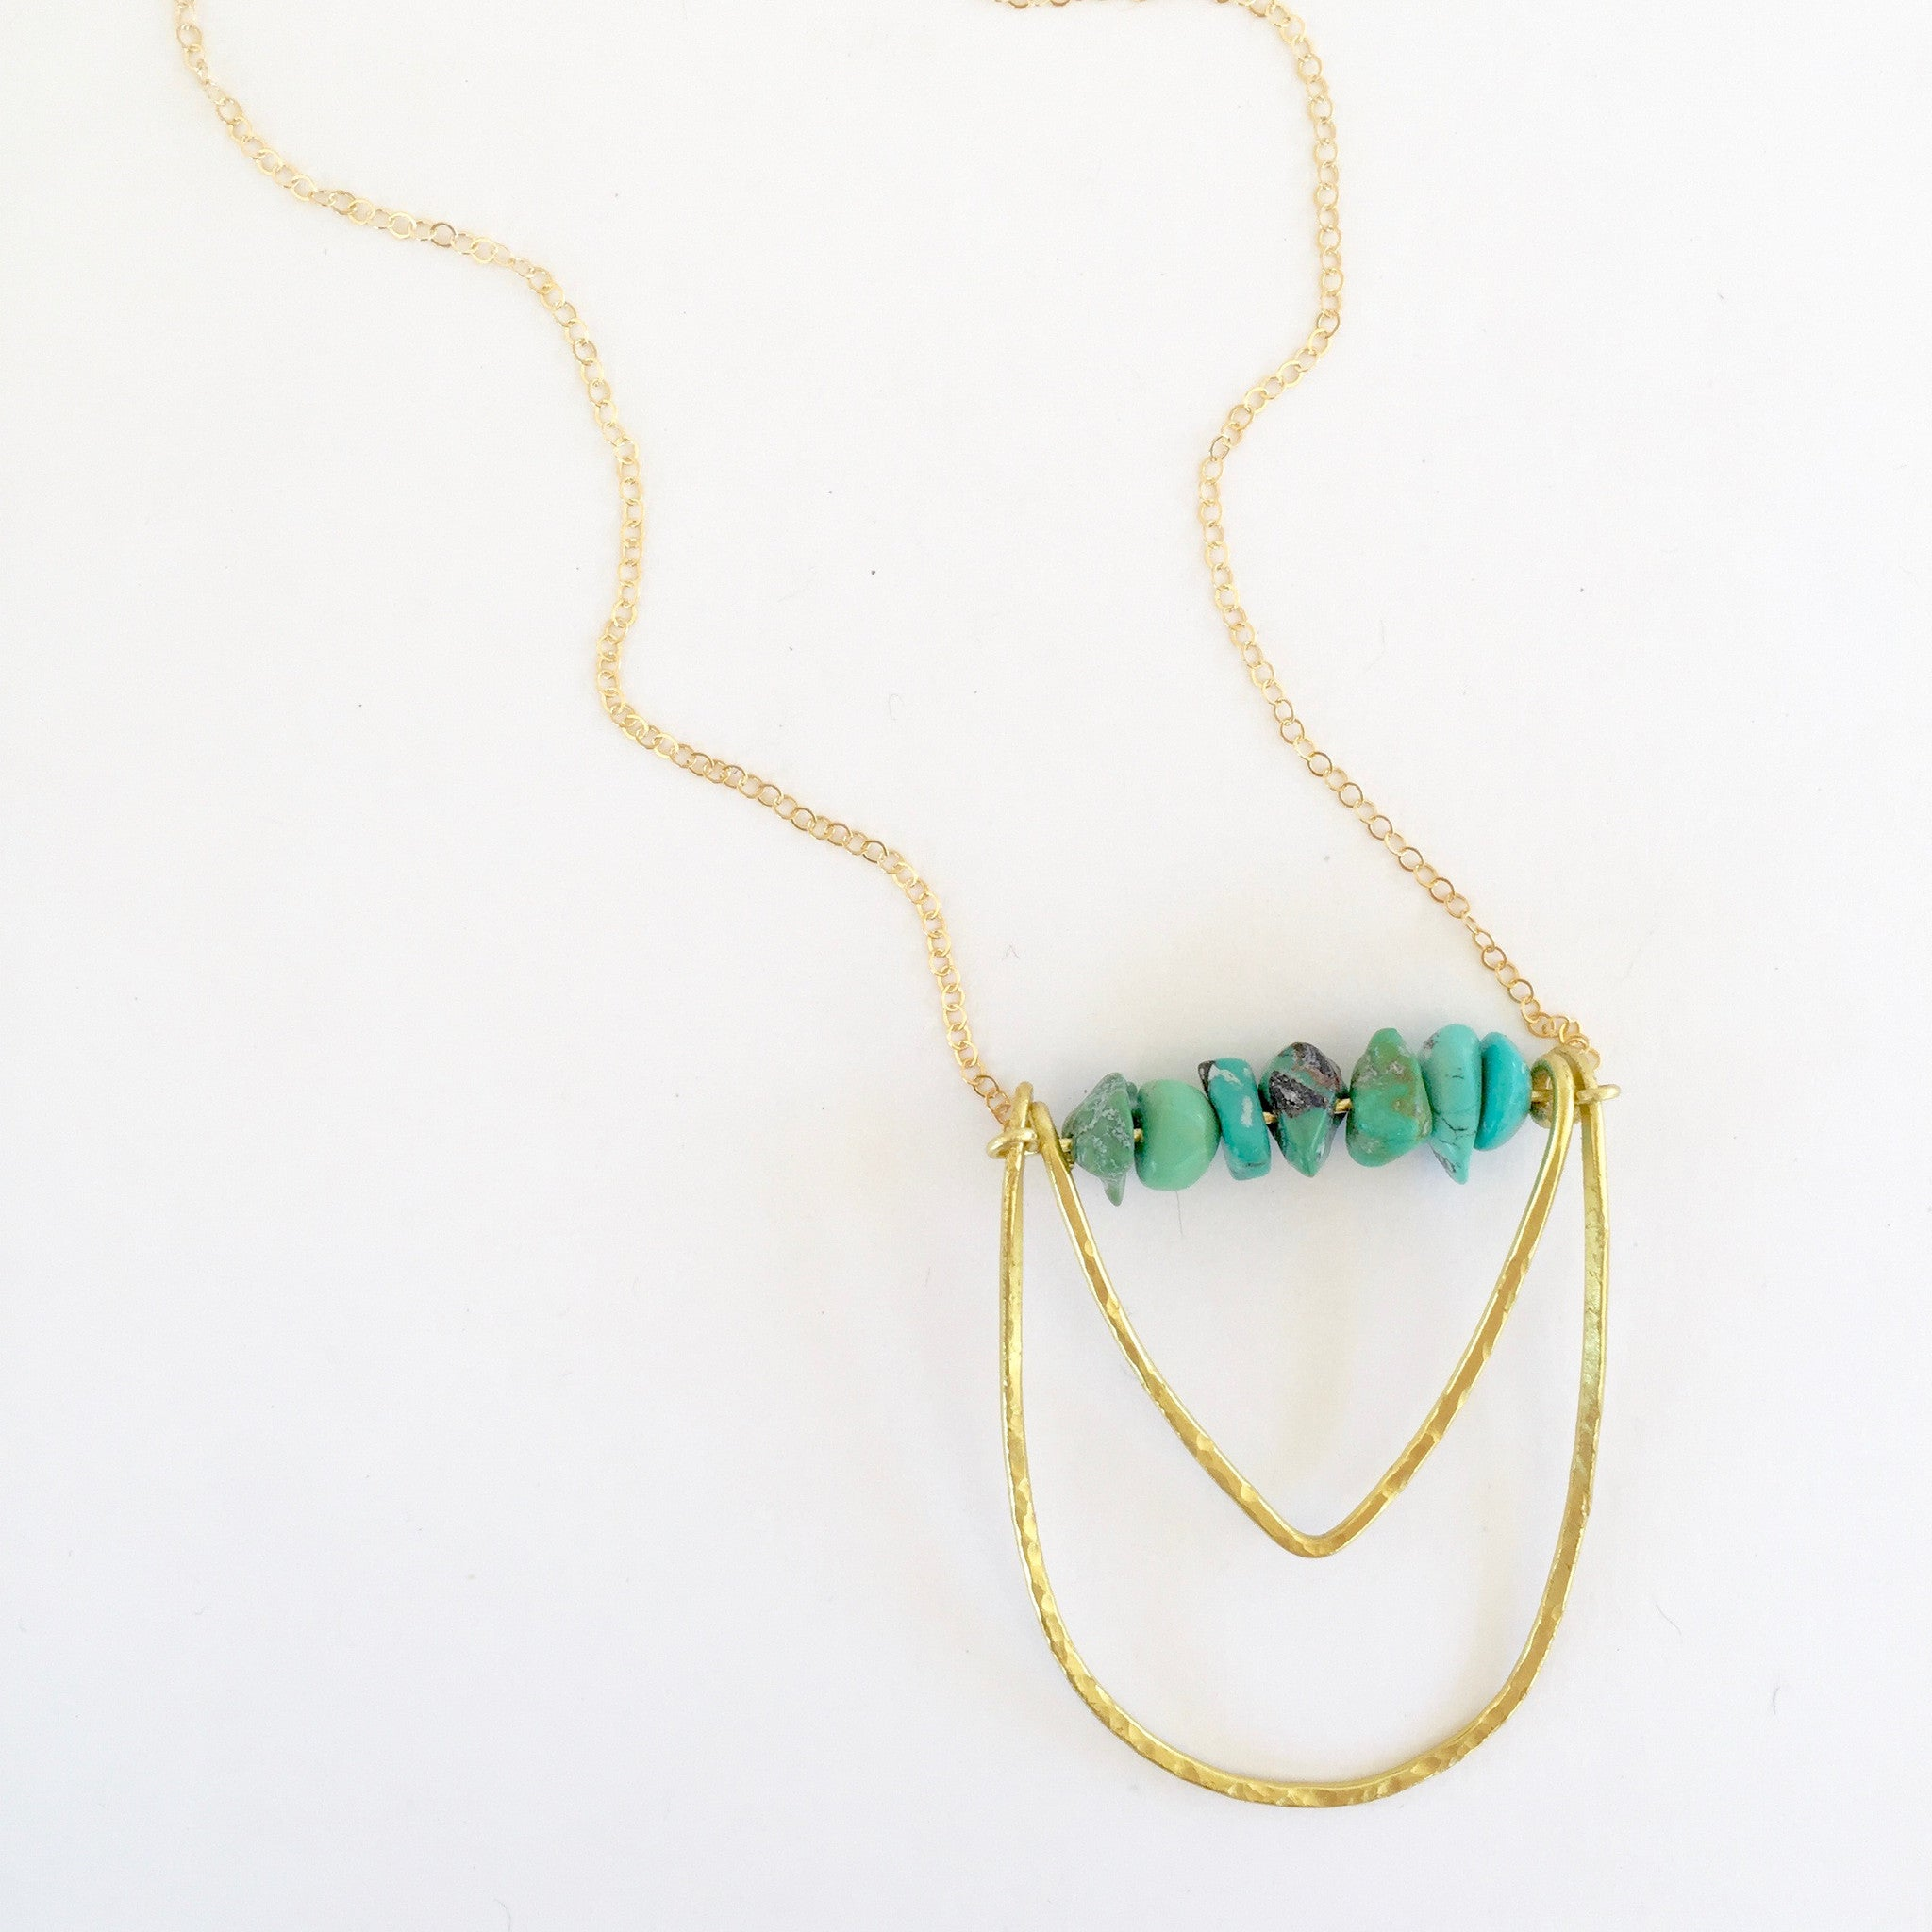 Mini Piper Necklace in Turquoise